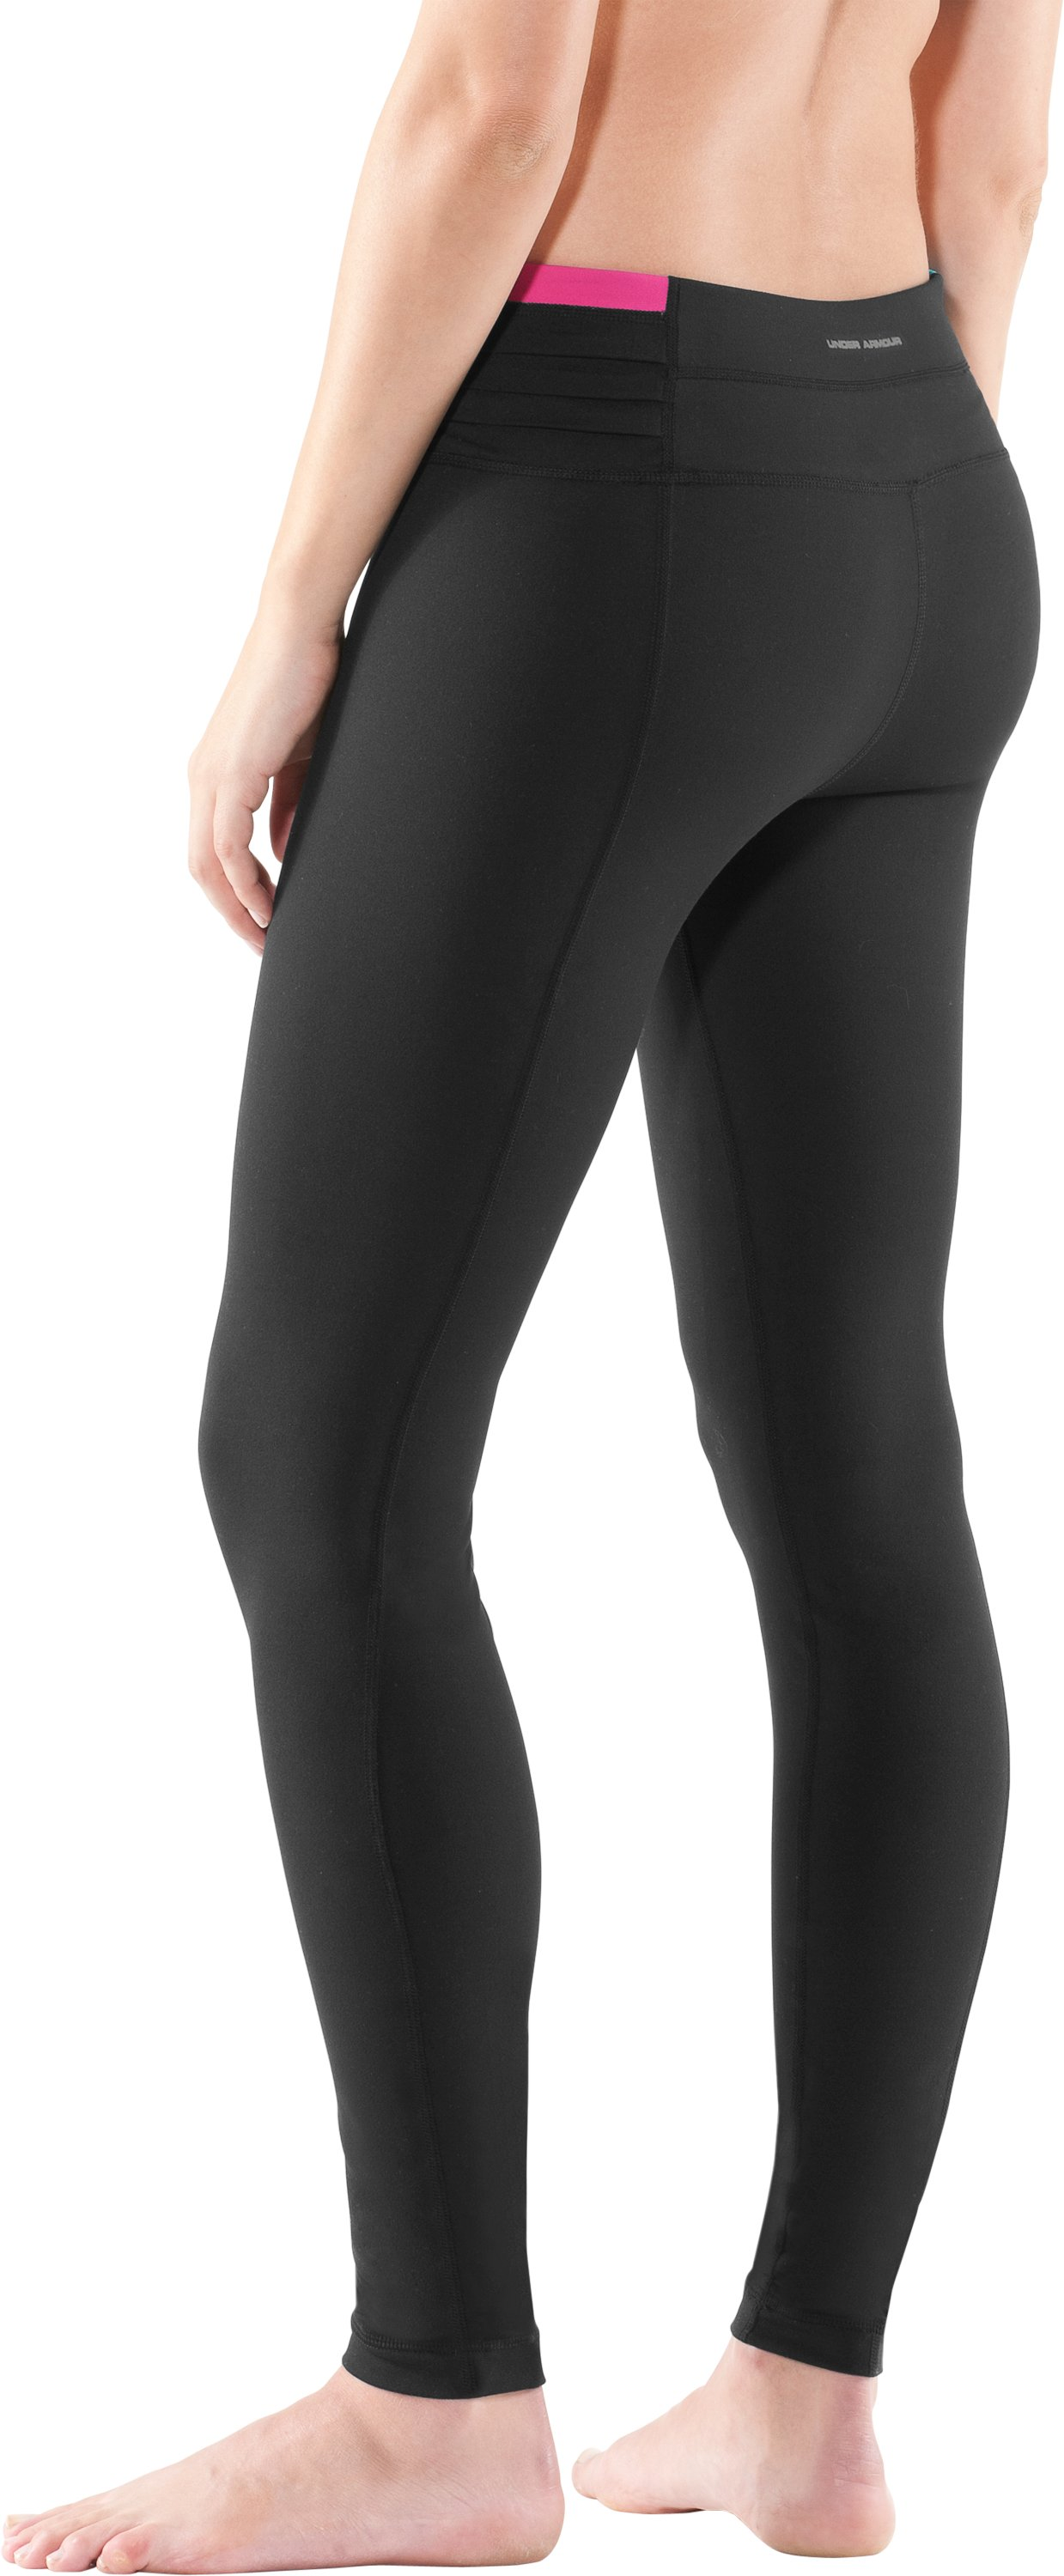 "Women's 30"" UA StudioLux® Quattro Leggings - Short, Black"